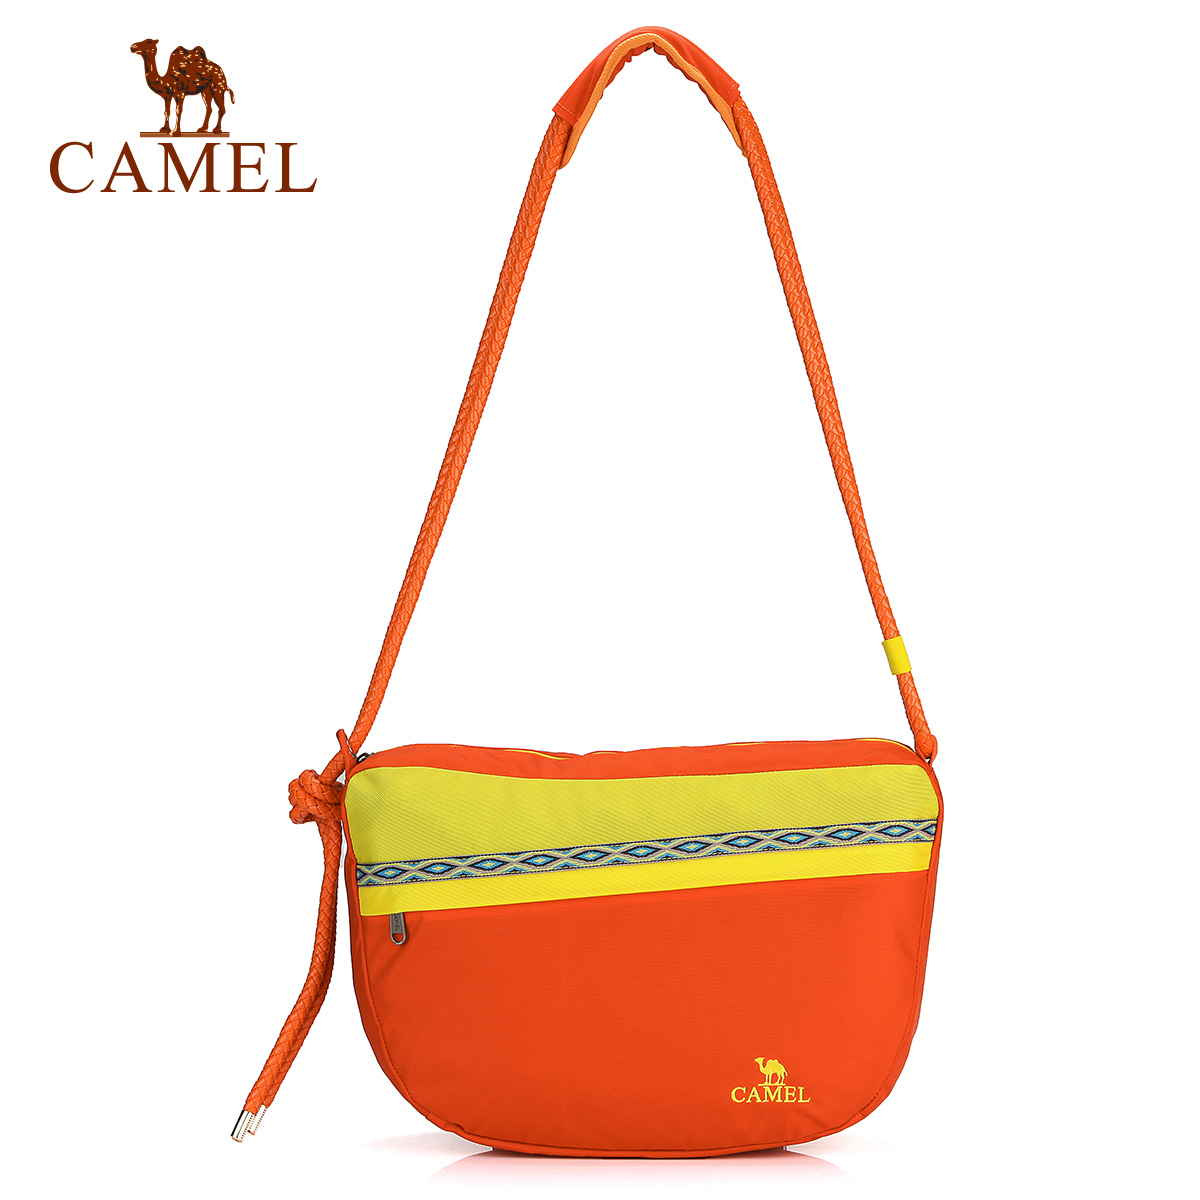 Camel camel outdoor leisure mountaineering bag shoulder bag years of the new couple outdoor travel bag